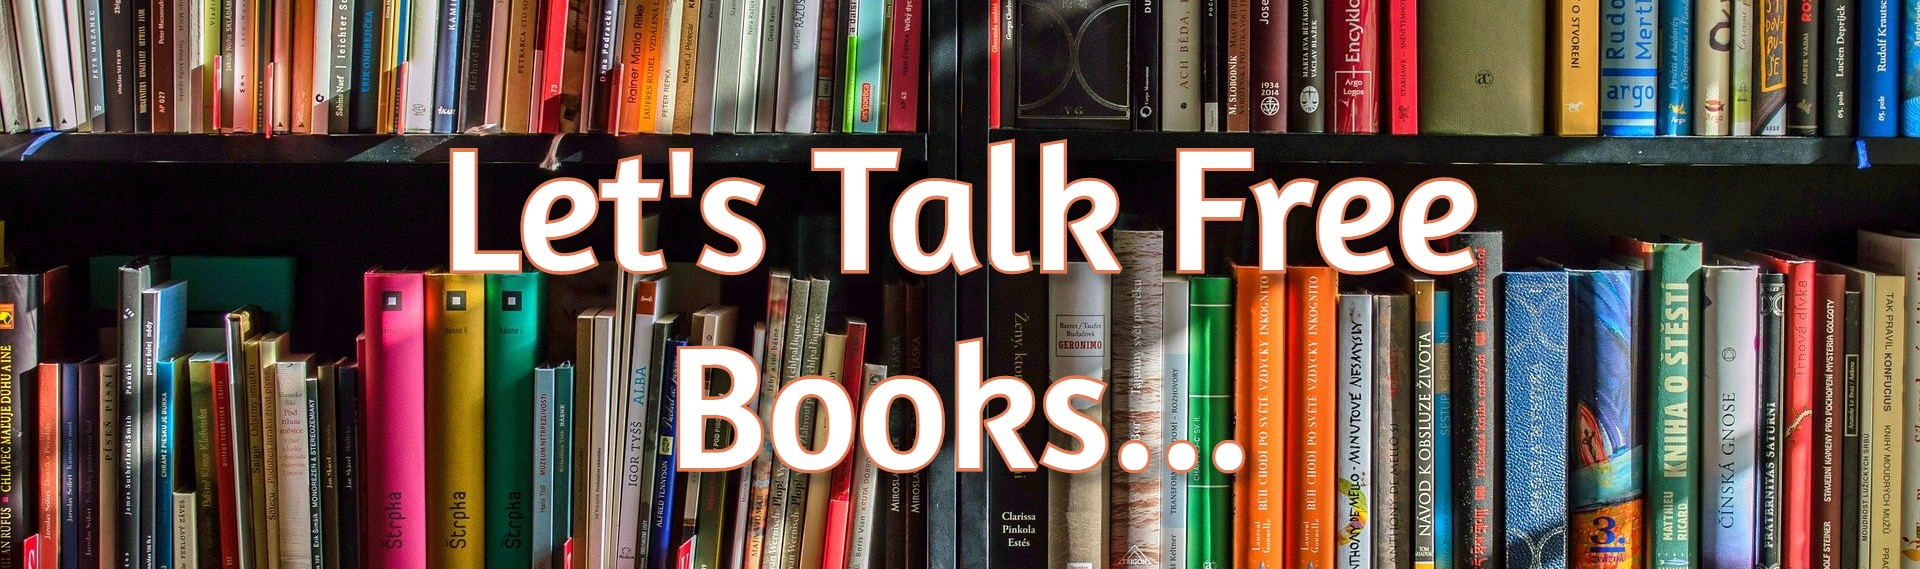 Let's Talk About Free Books